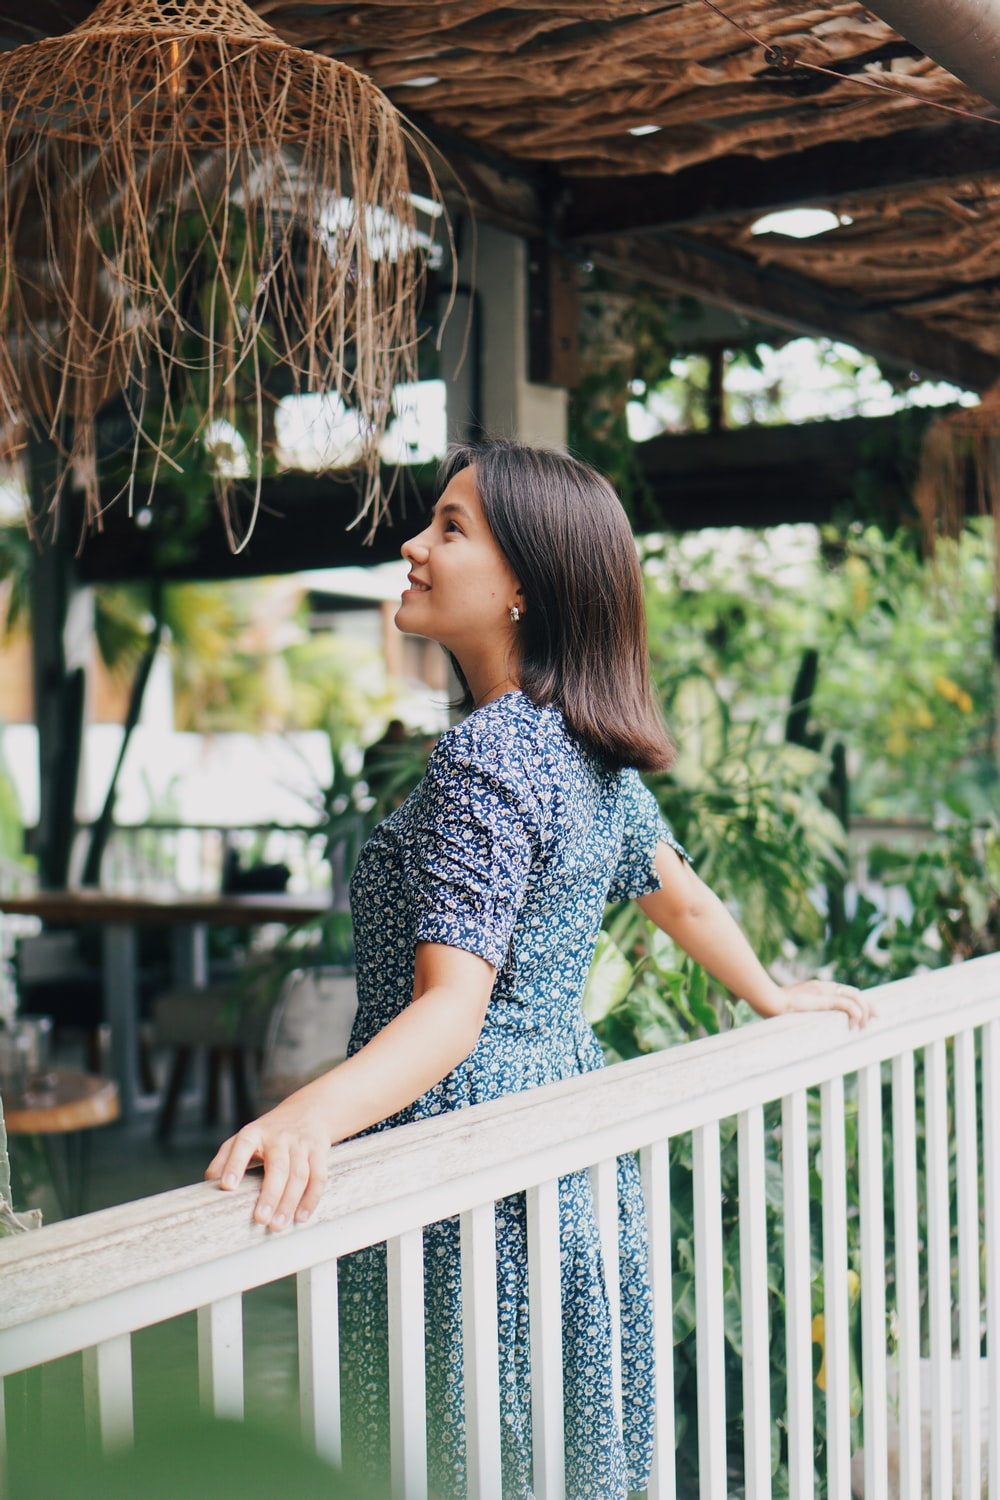 woman in blue and white floral shirt sitting on brown wooden bench during daytime